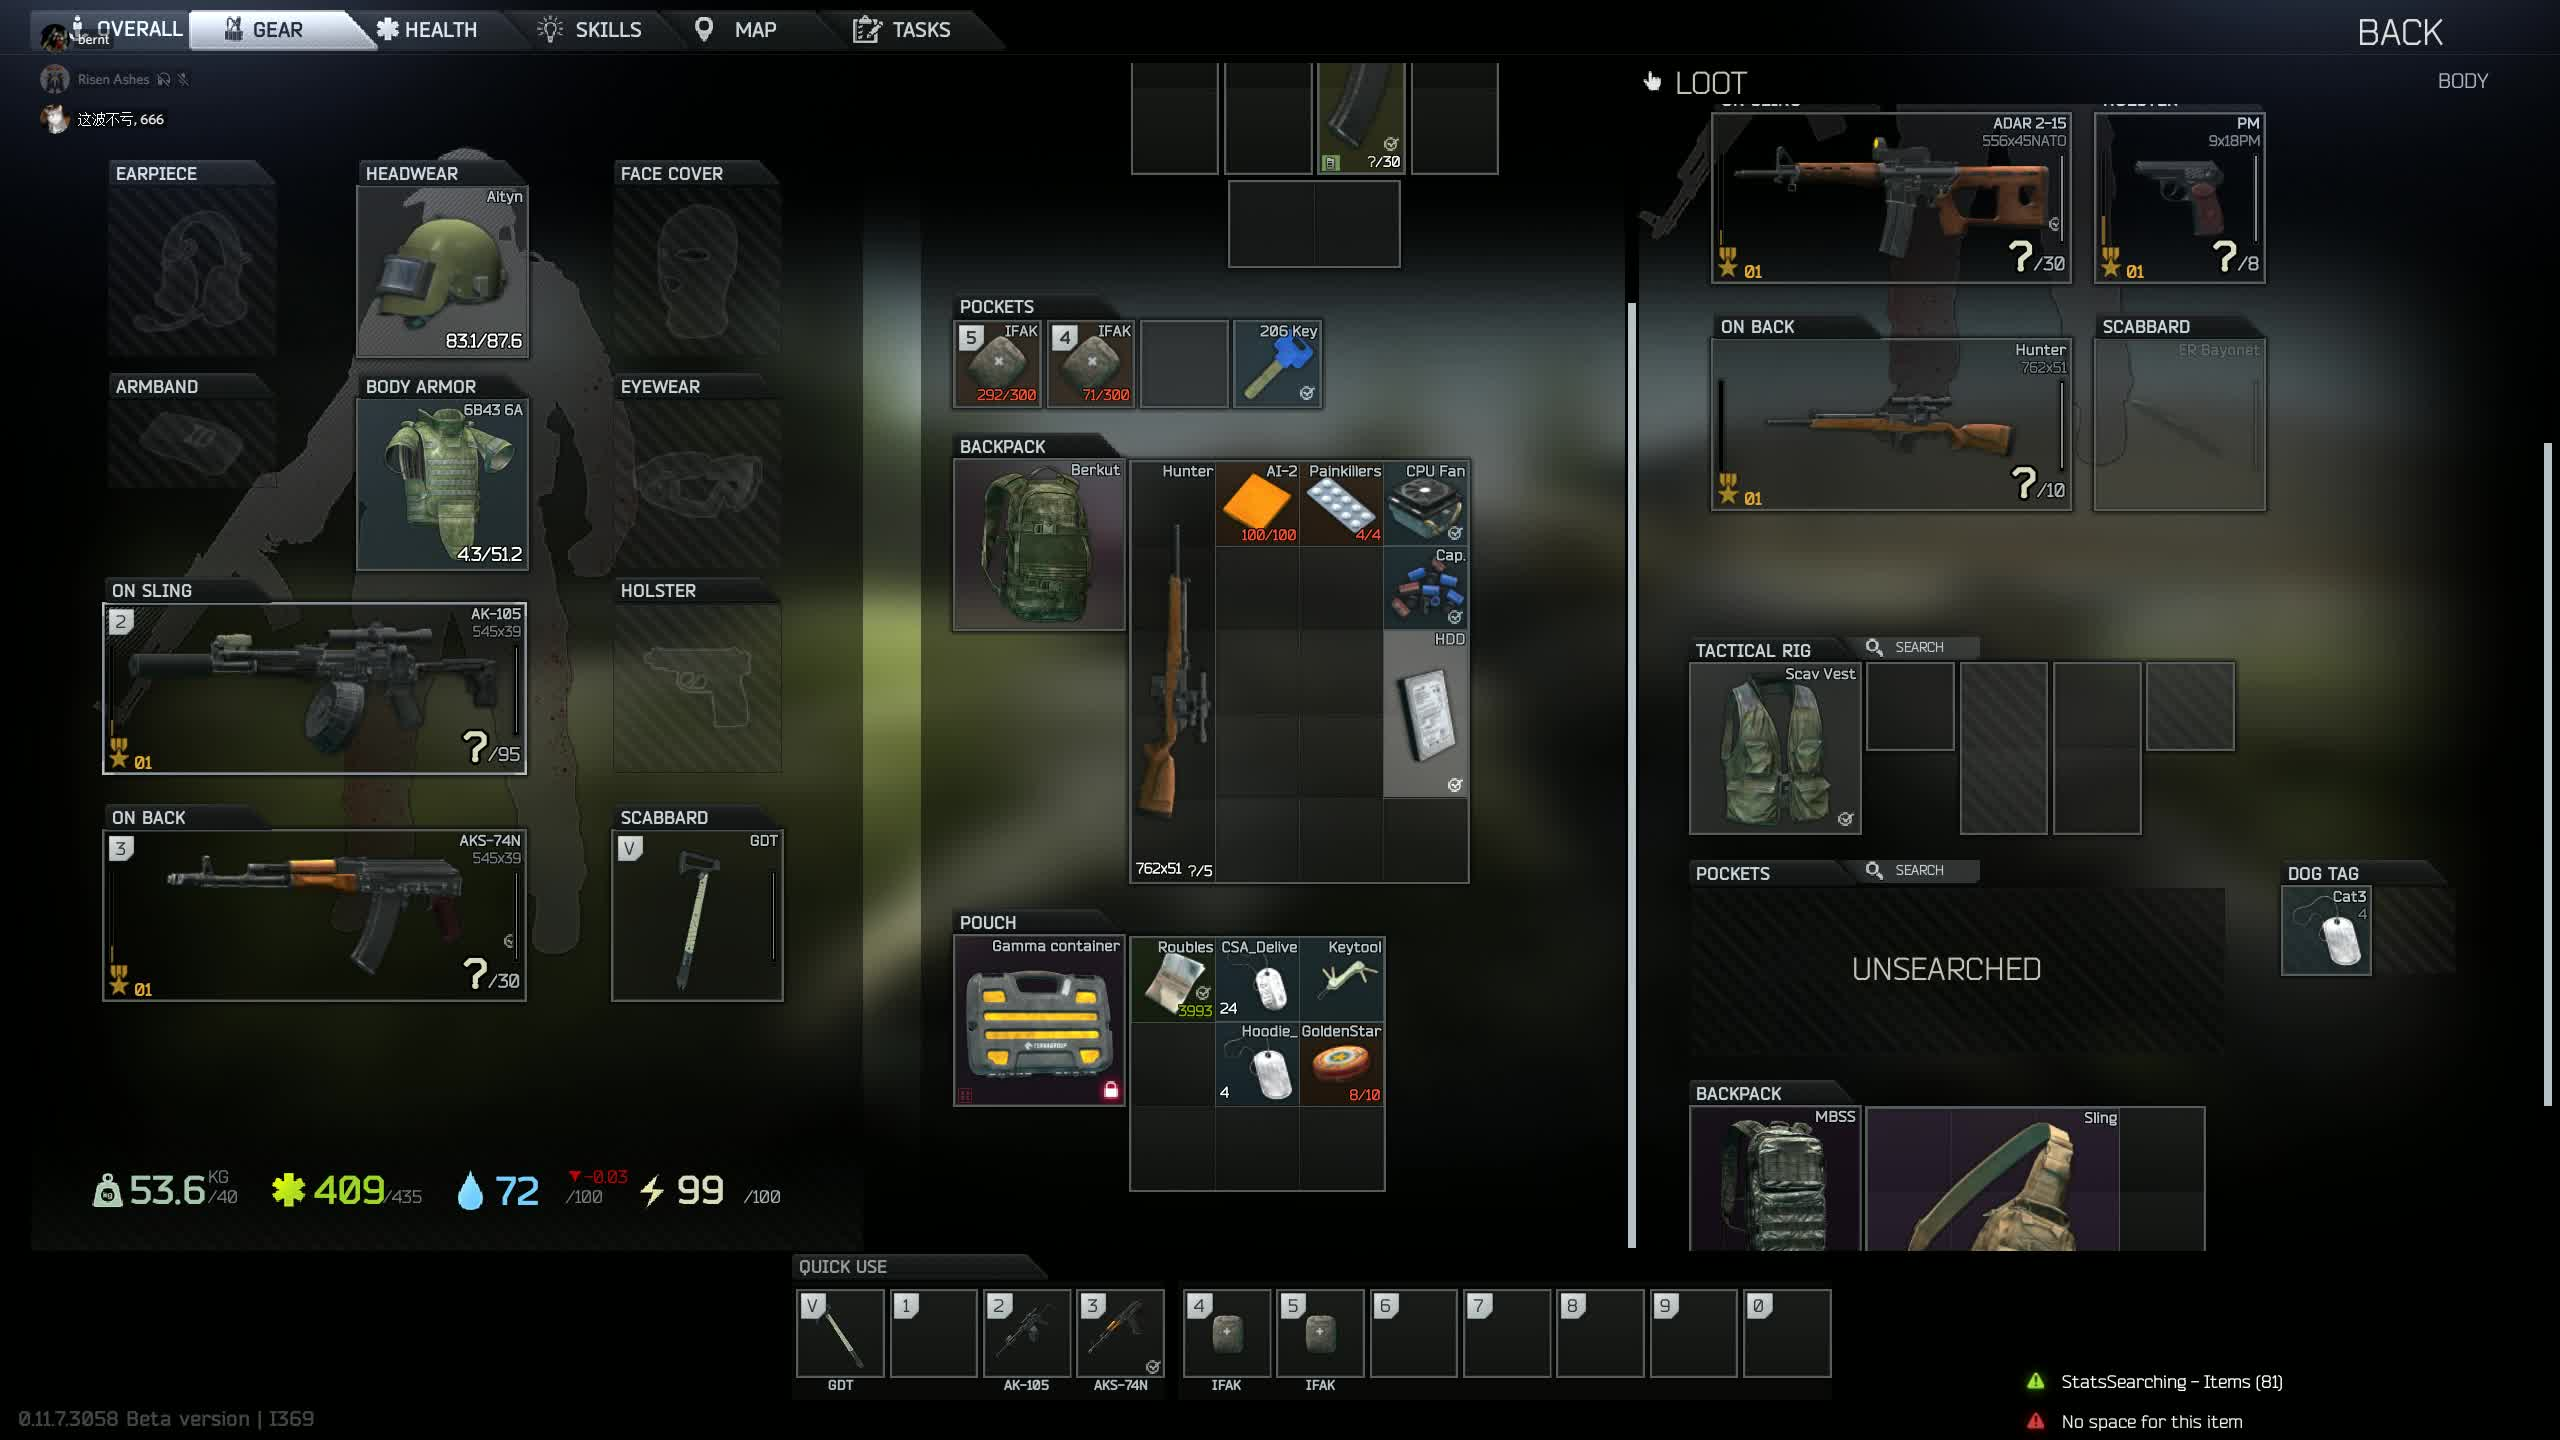 escapefromtarkov, vlc-record-2019-04-22-14h07m11s-Escape From Tarkov 2019.04.22 - 14.05.44.03.DVR.mp4- GIFs